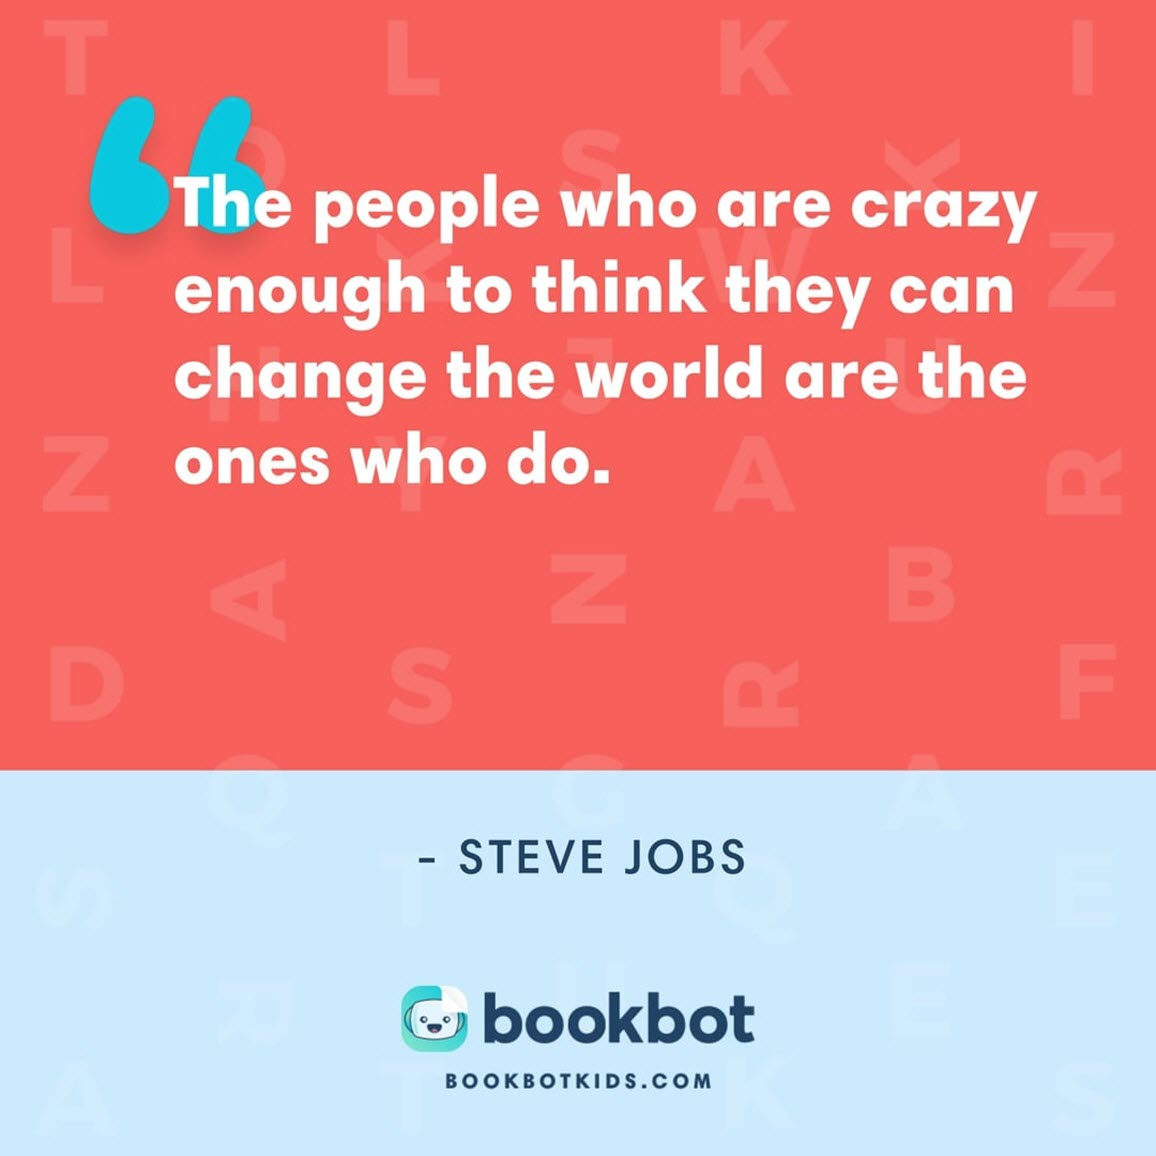 The people who are crazy enough to think they can change the world are the ones who do. – Steve Jobs